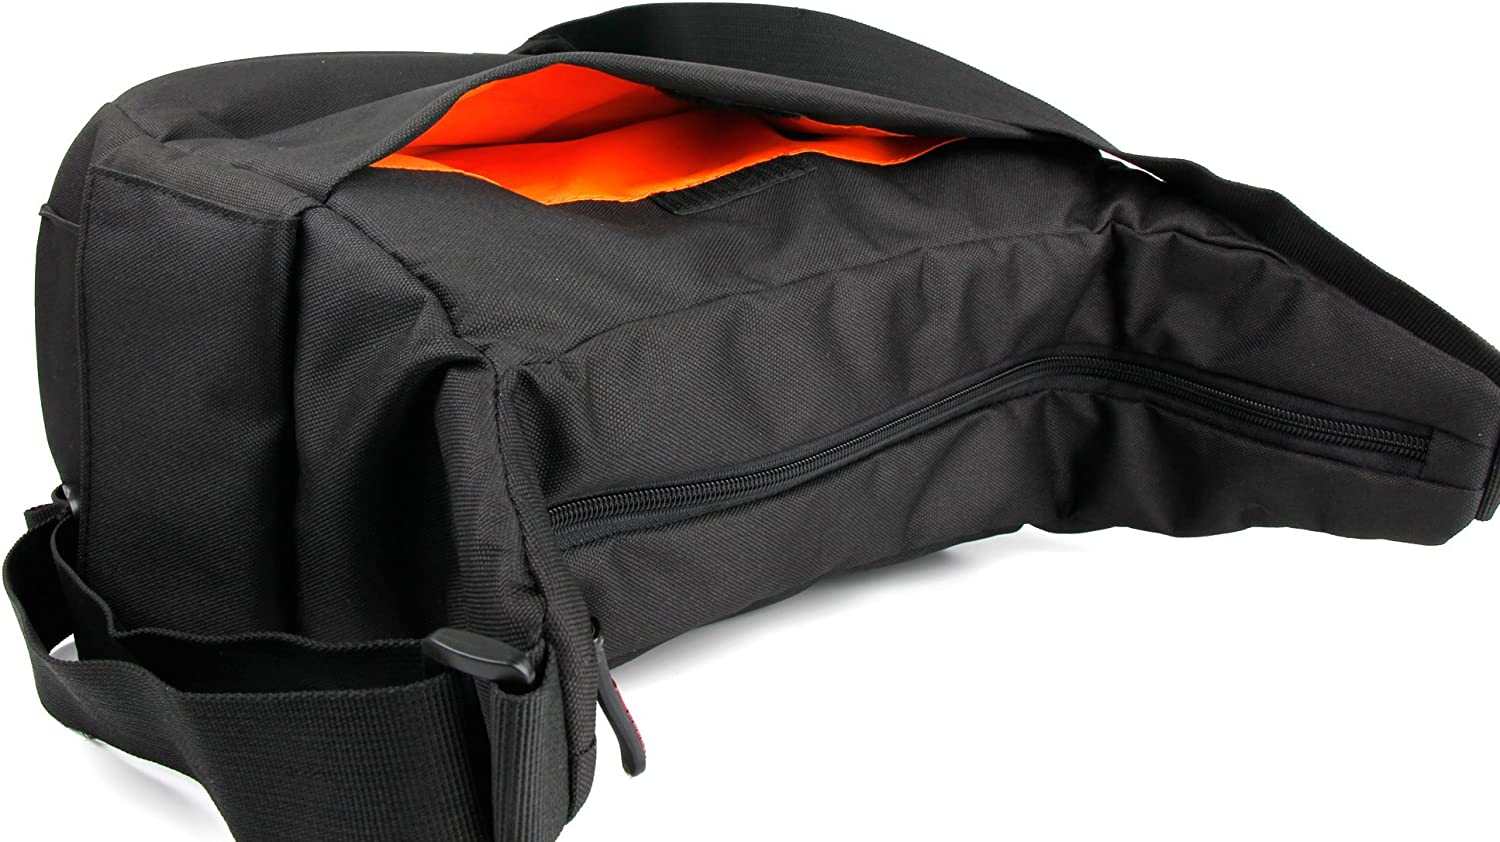 DURAGADGET Rugged Shoulder Sling Carry Bag with Adustable Interior /& Multiple Compartments for Fujifilm Finepix SL1000 Fujifilm X-A2 Fujifilm XQ2 Fujifilm FinePix XP80